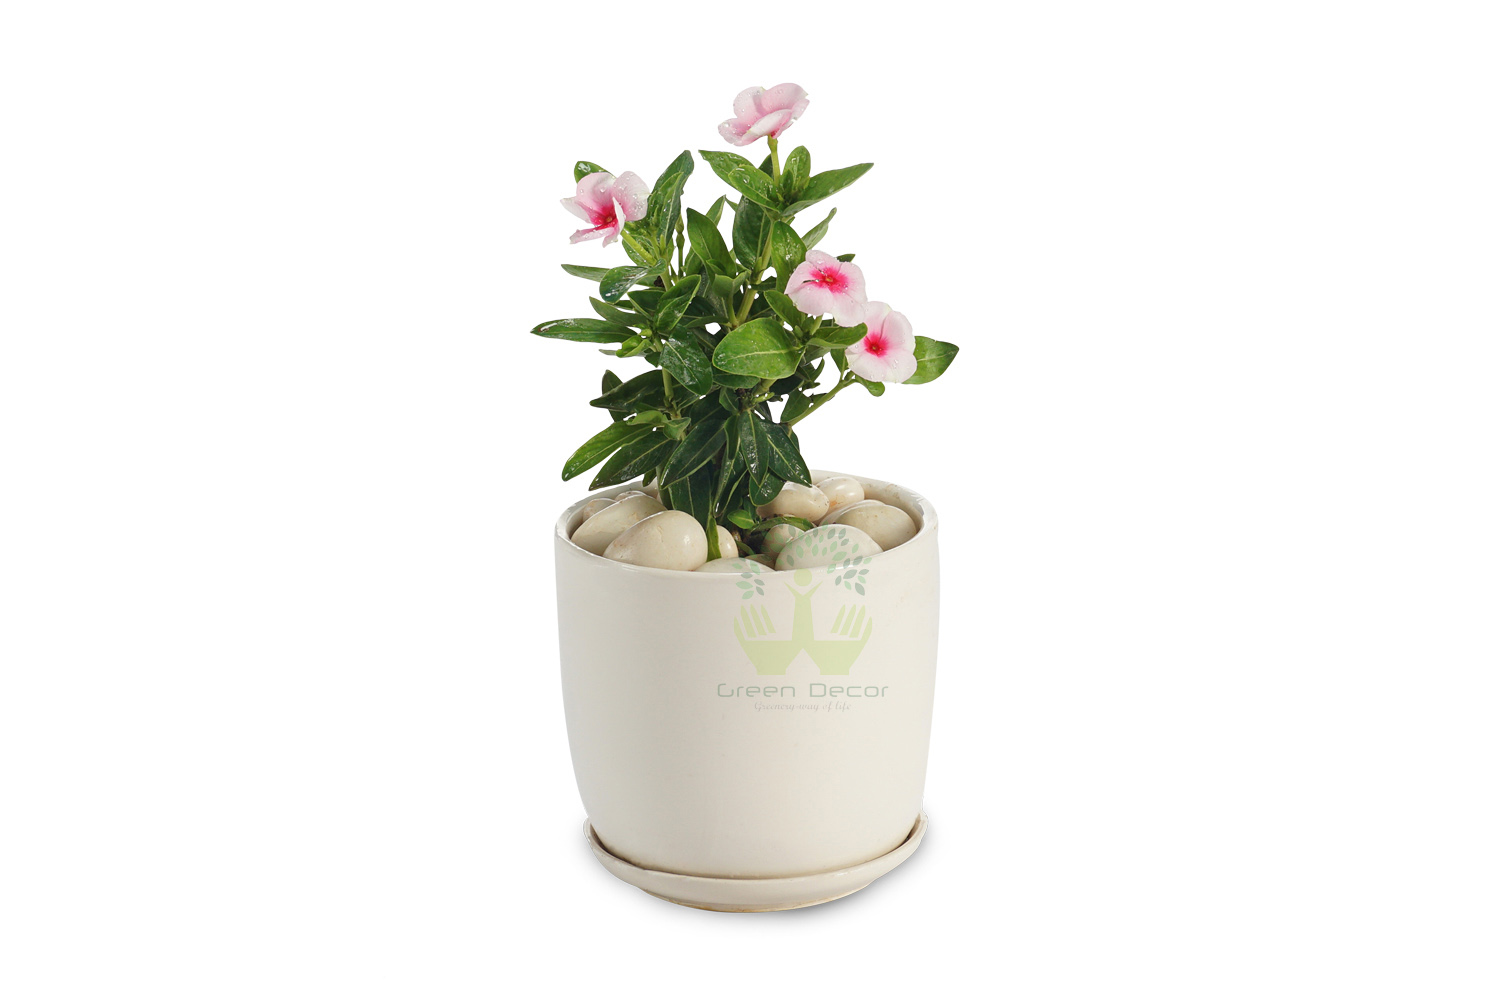 Buy Periwinkle pink Plants , White Pots and seeds in Delhi NCR by the best online nursery shop Greendecor.